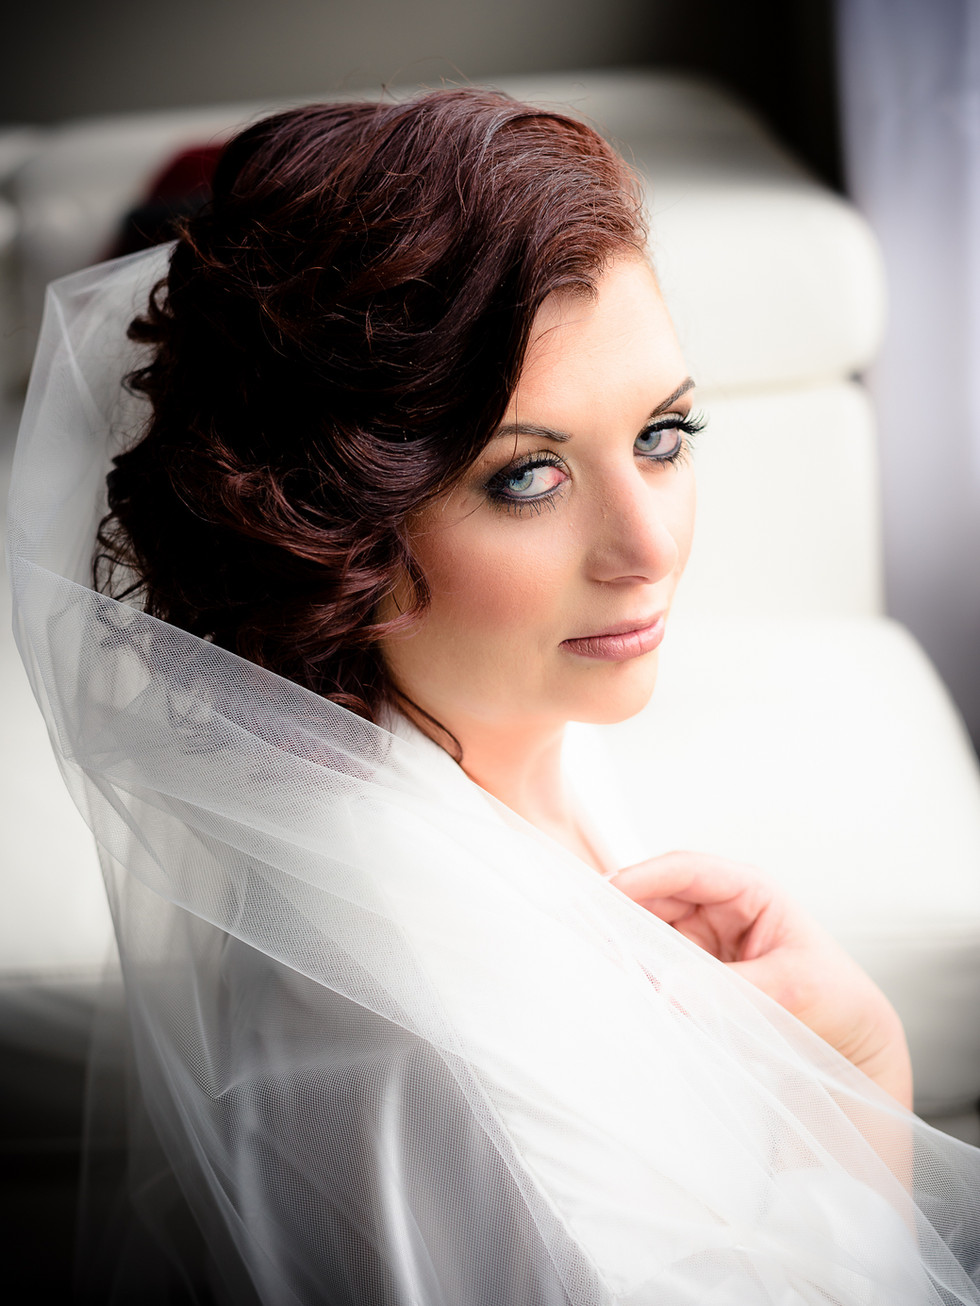 affordable wedding photographers rochester ny